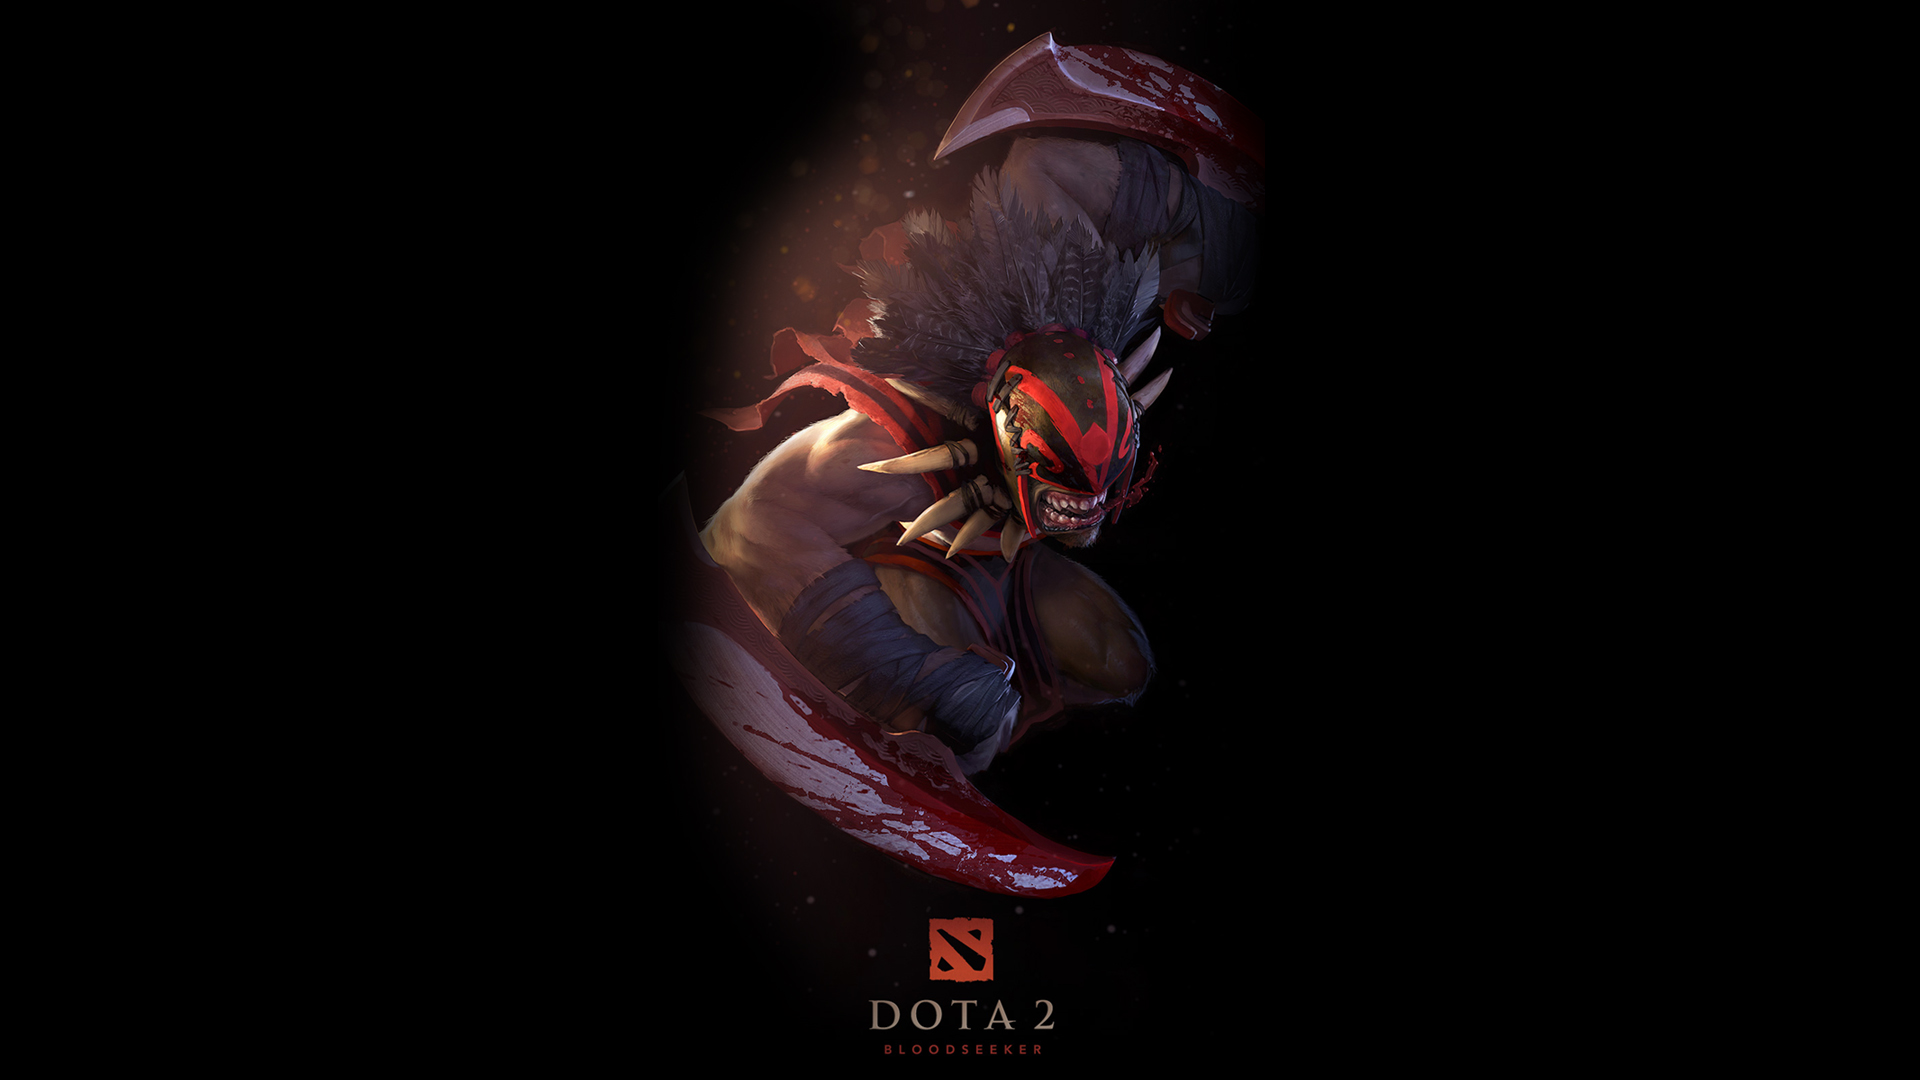 1920x1080 DOTA 2 - Bloodseeker desktop PC and Mac wallpaper